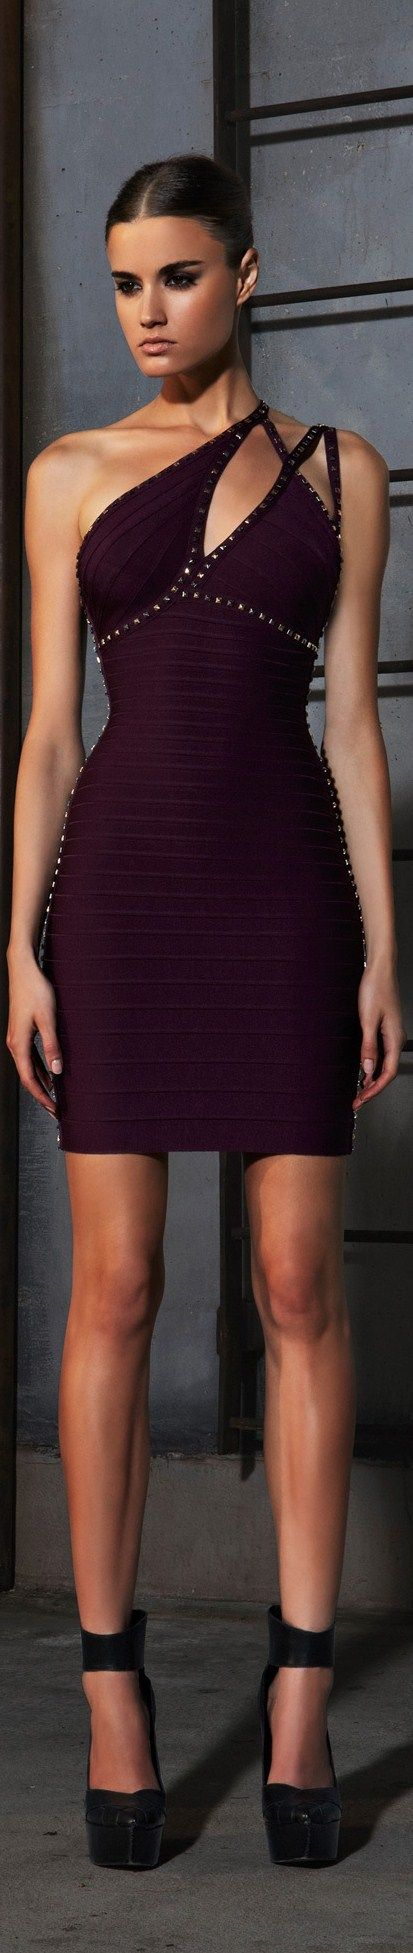 #PRE-FALL 2013 Hervé Léger by Max Azria bandage dress Like, Repin, Share :)